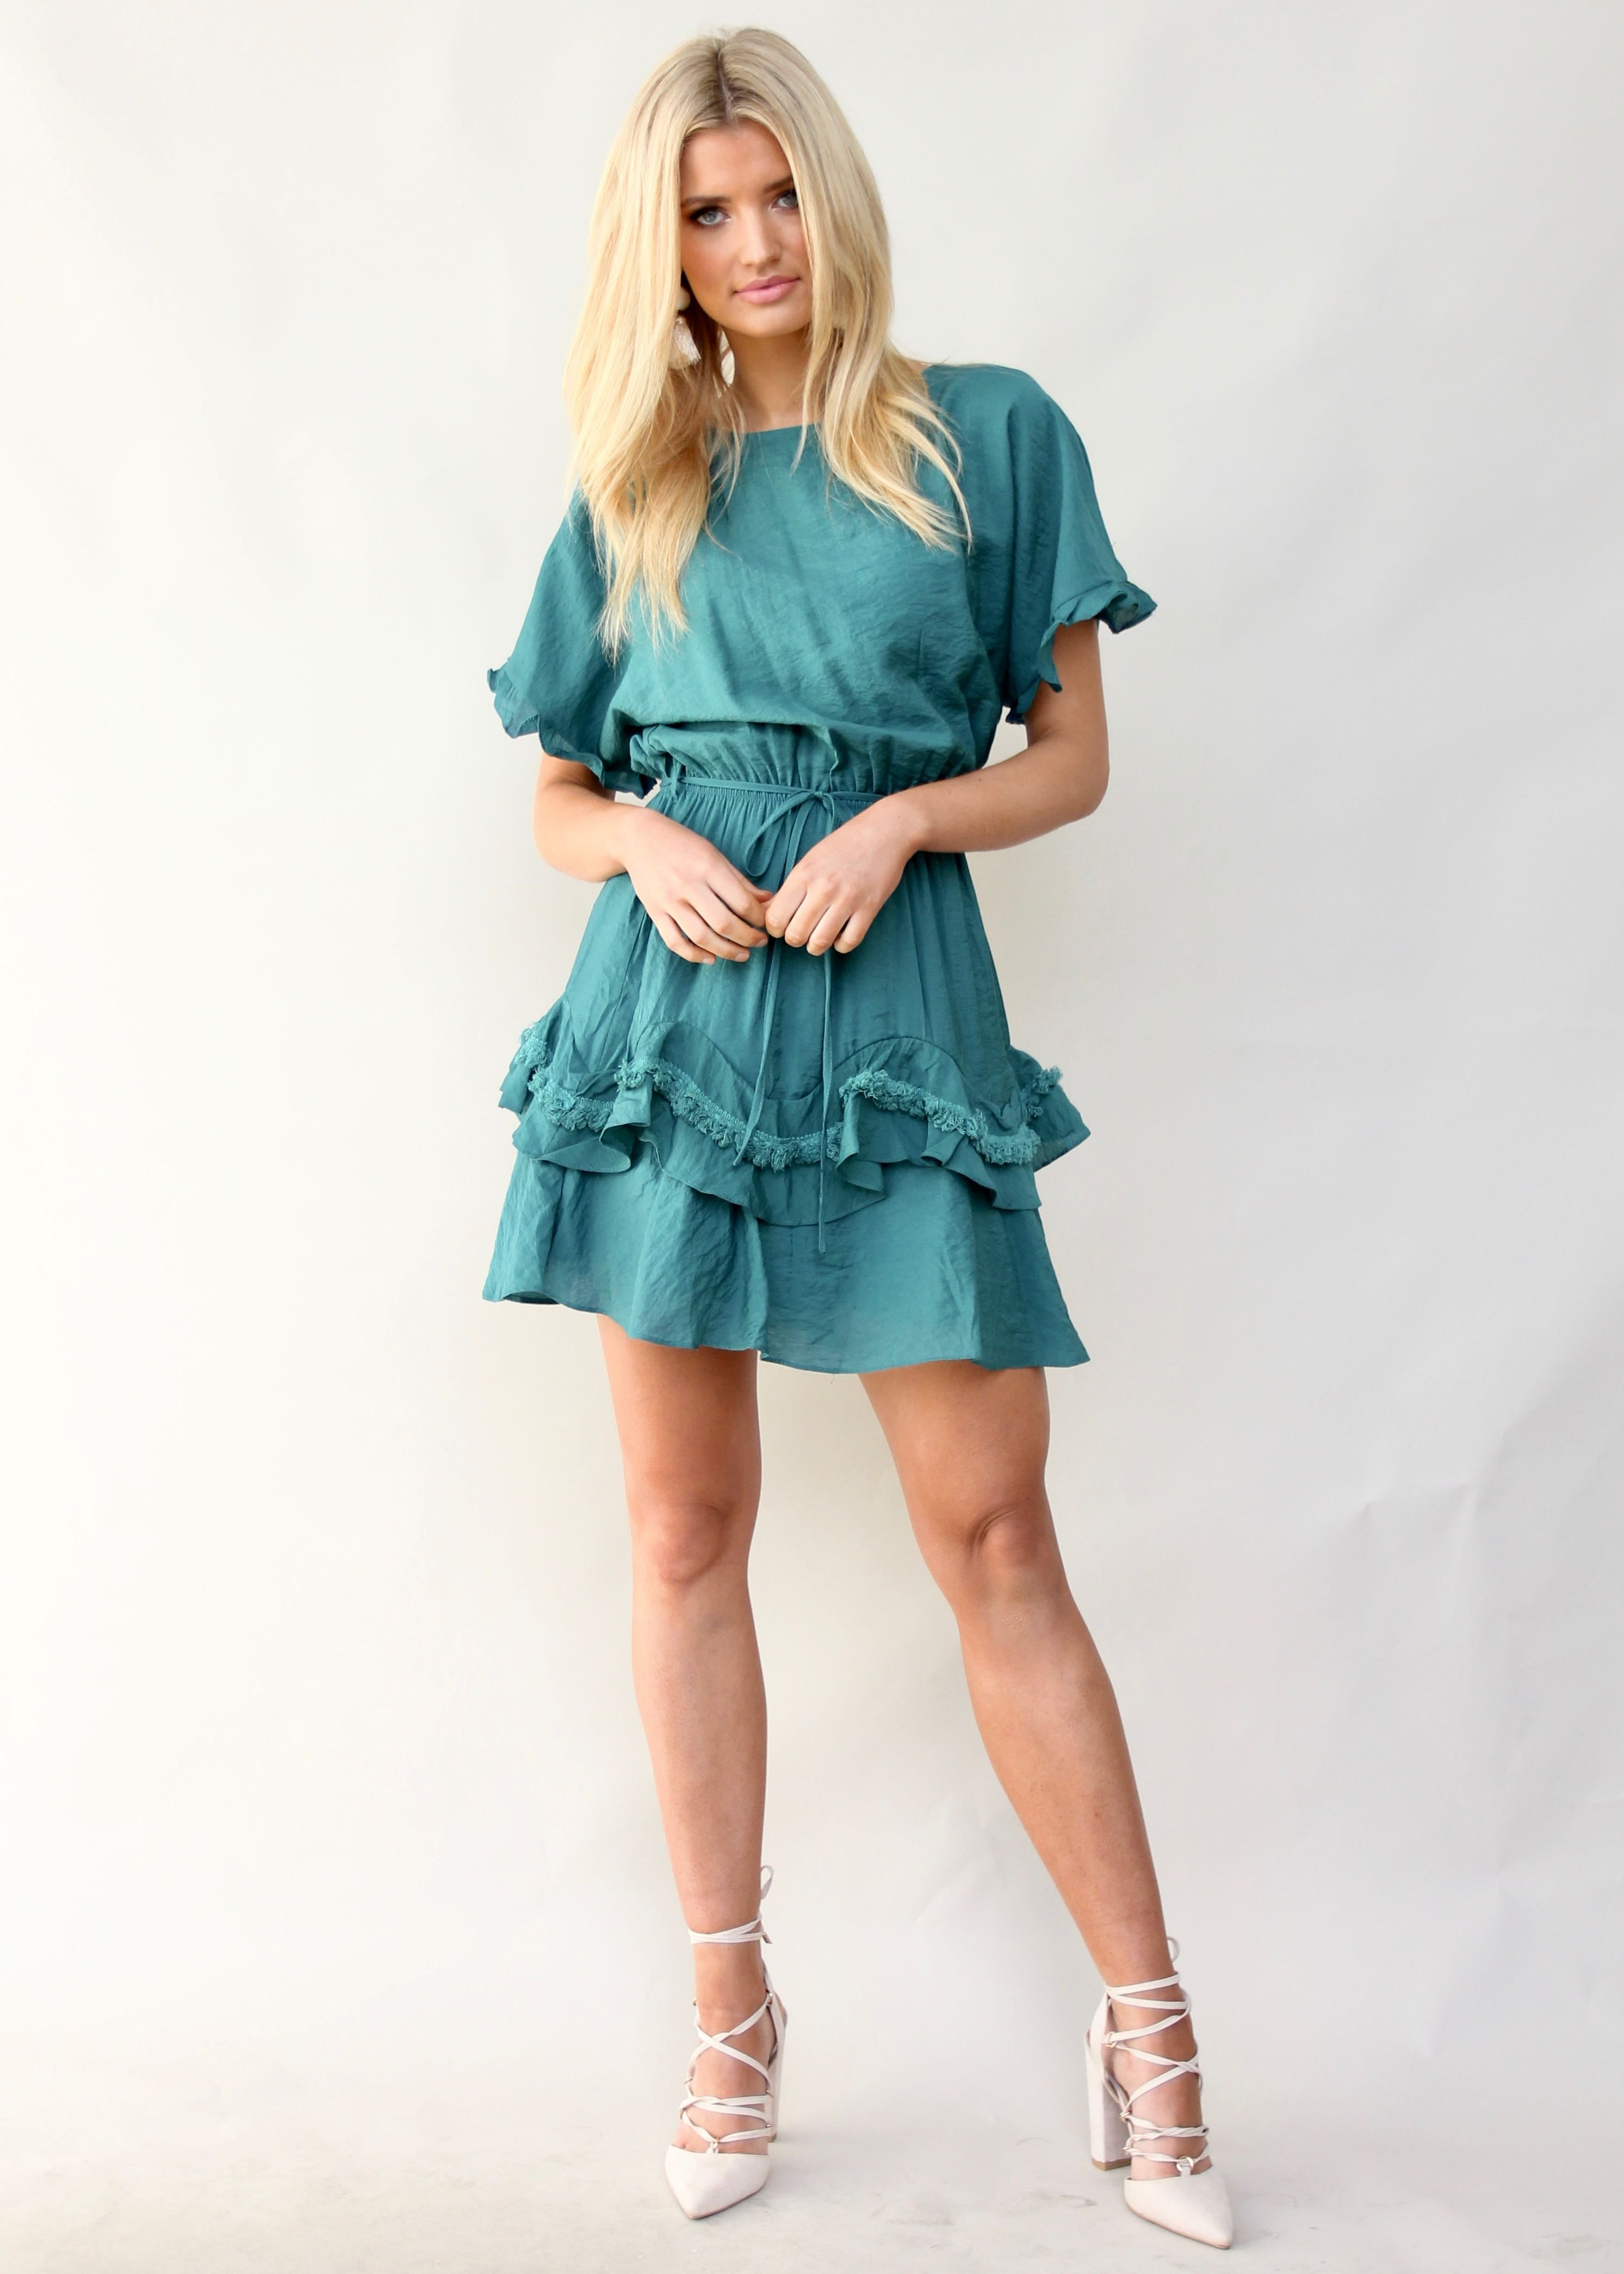 Touch of Glow Dress - Teal